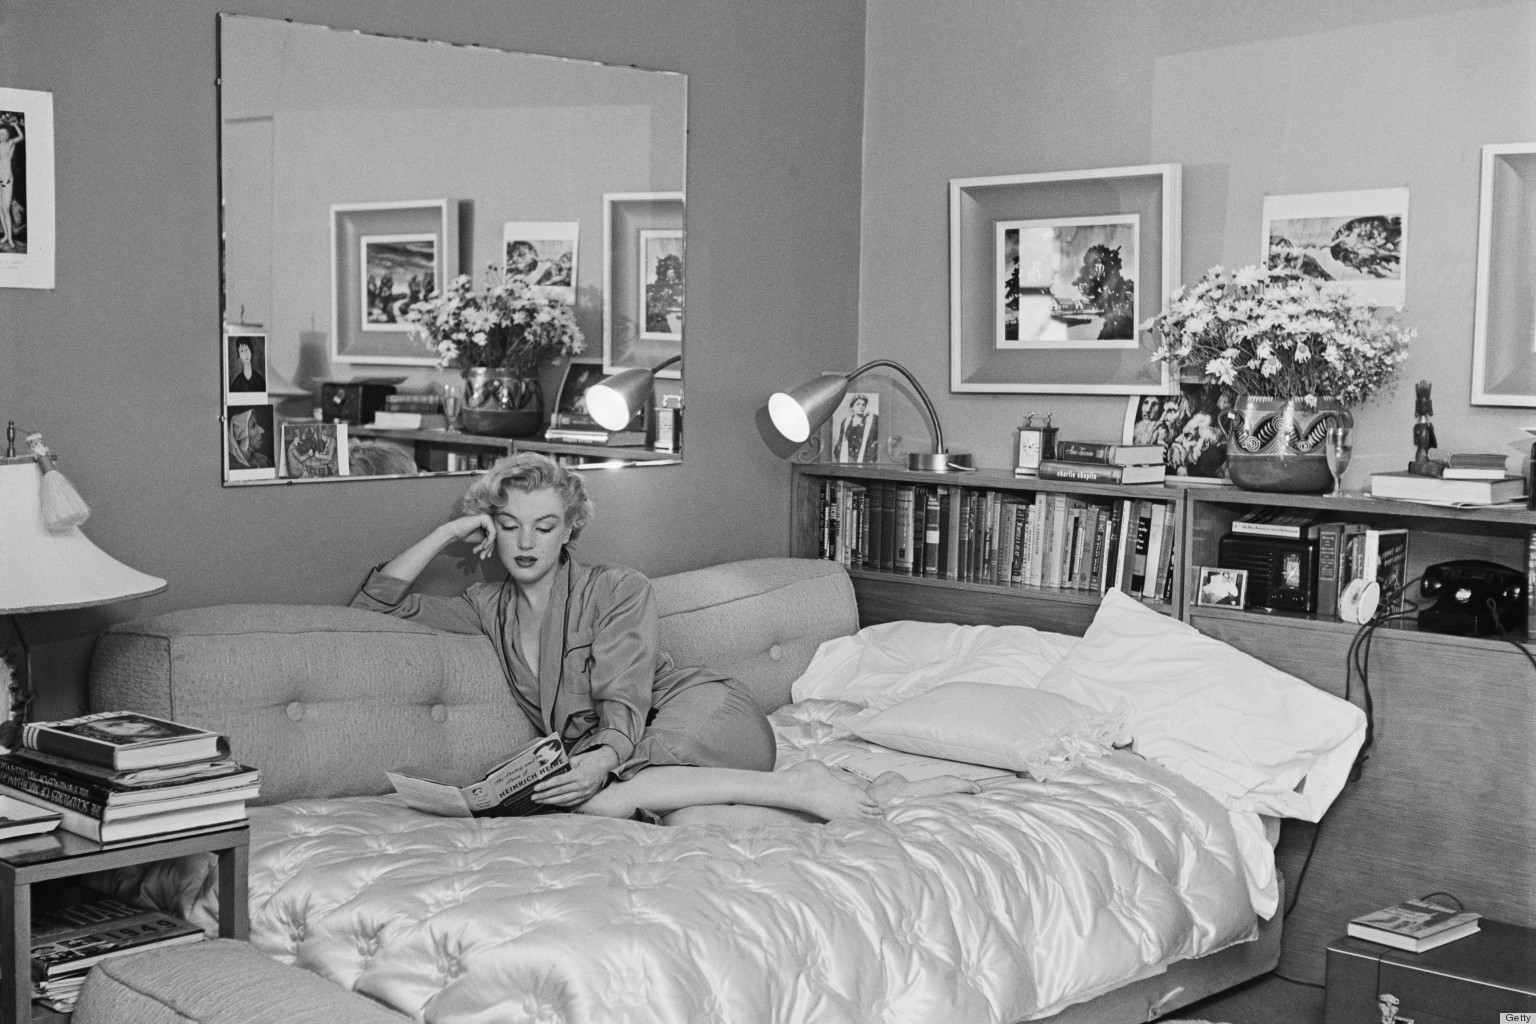 Crime Scene Photos Of Marilyn Monroe O-marilyn-monroe-bedroom- ...